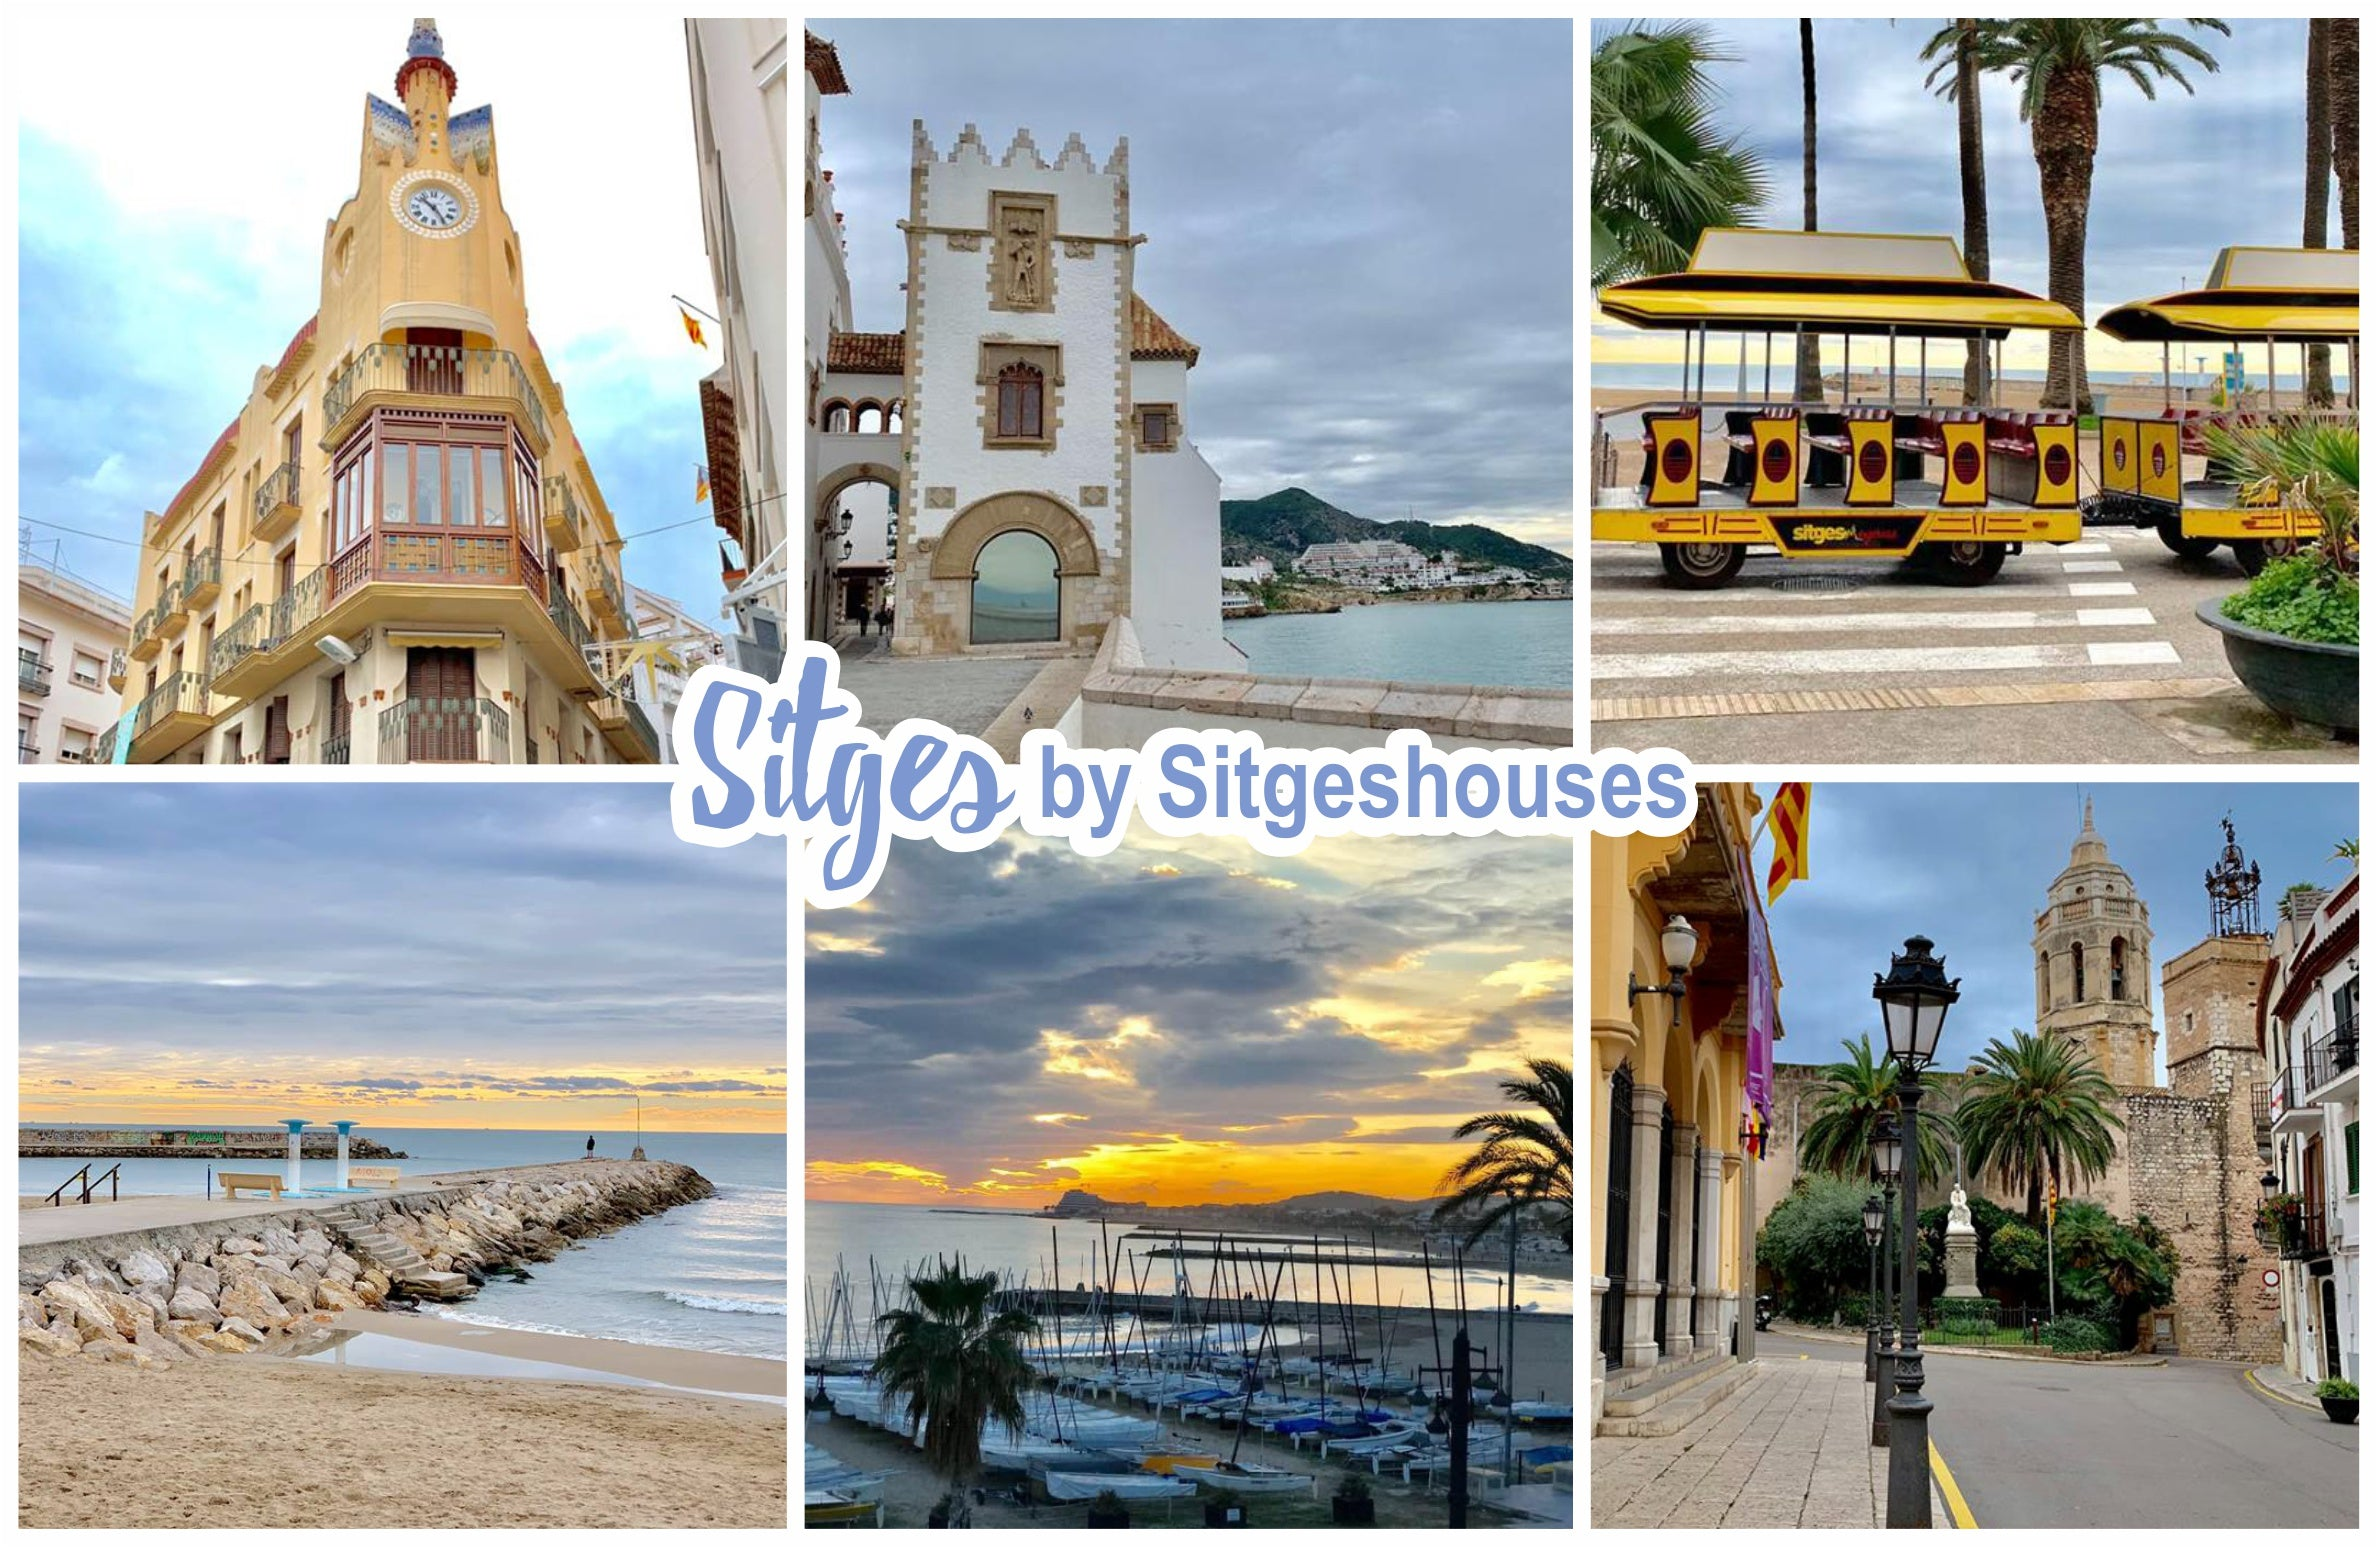 Sitges by Sitgeshouses